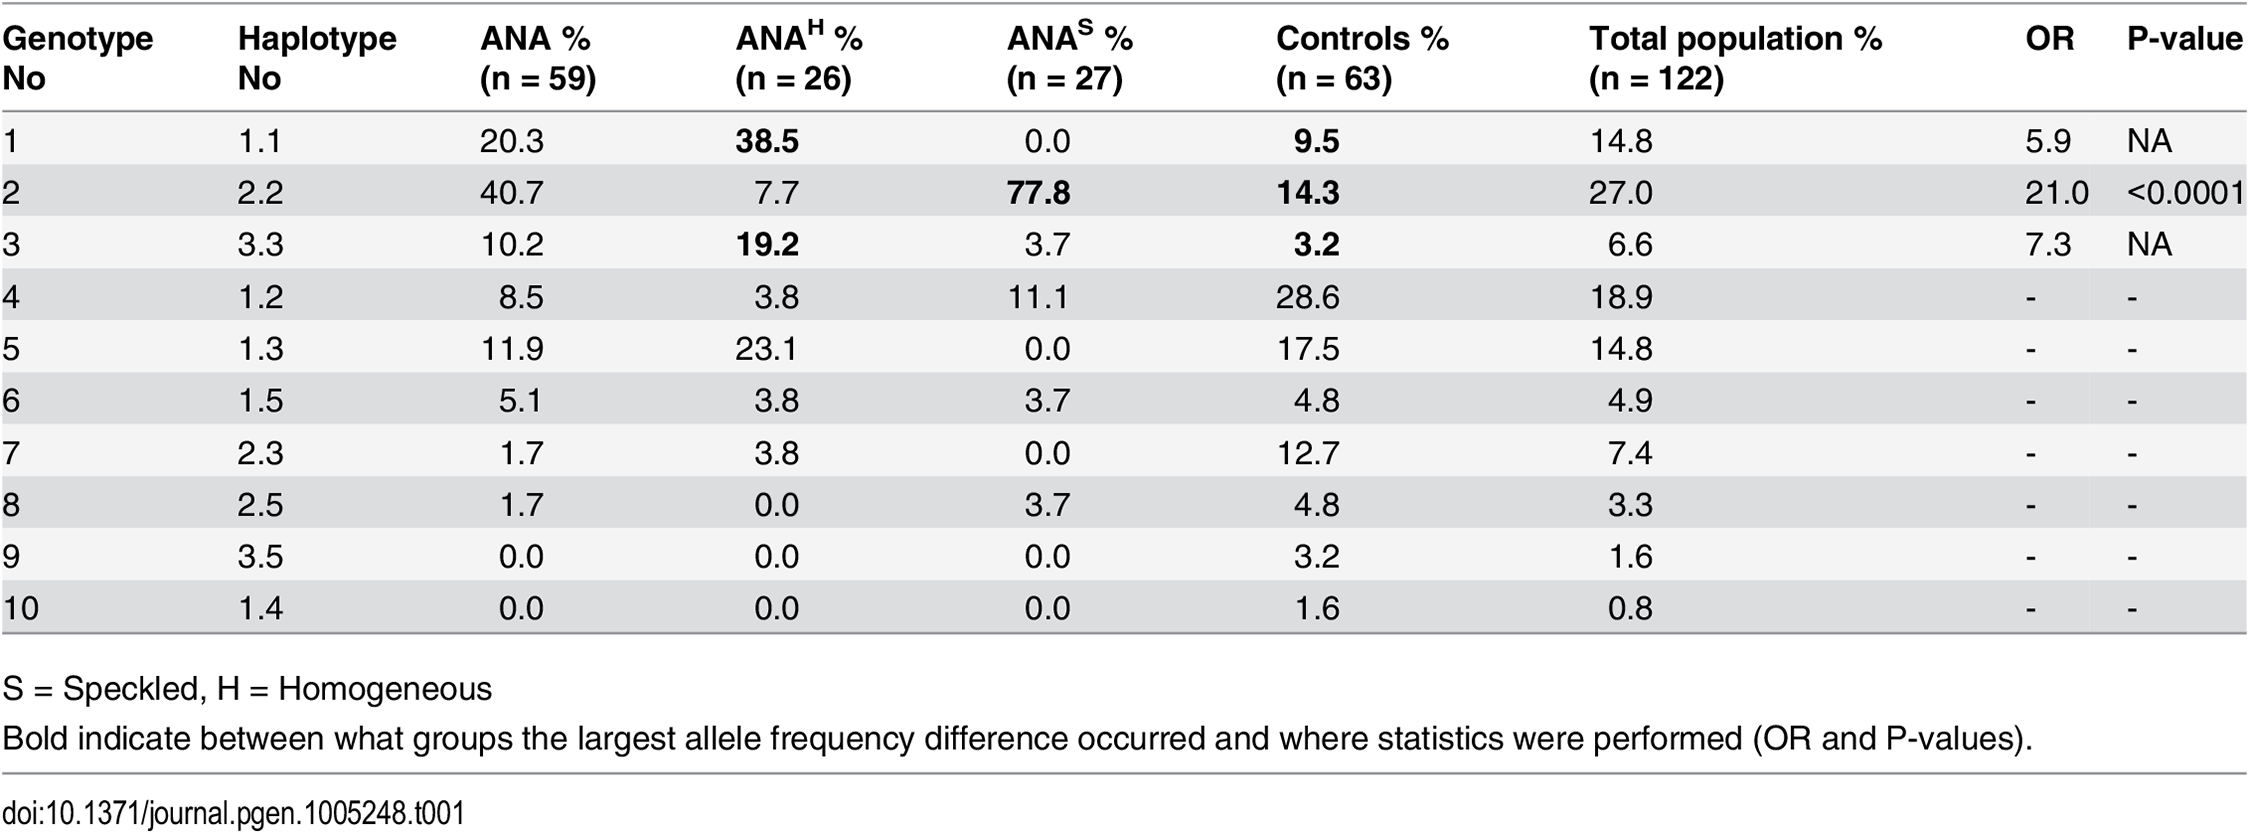 Genotype frequencies in the NSDTR population indicate an increased frequency for ANA<sup>S</sup> dogs homozygous for haplotype 2 (DLA-DRB1*00601/DQA1*005011/DQB1*02001) compared to controls and an increase in frequency for ANA<sup>H</sup> dogs with a homozygous haplotype (No 1.1 and 3.3) compared to controls.